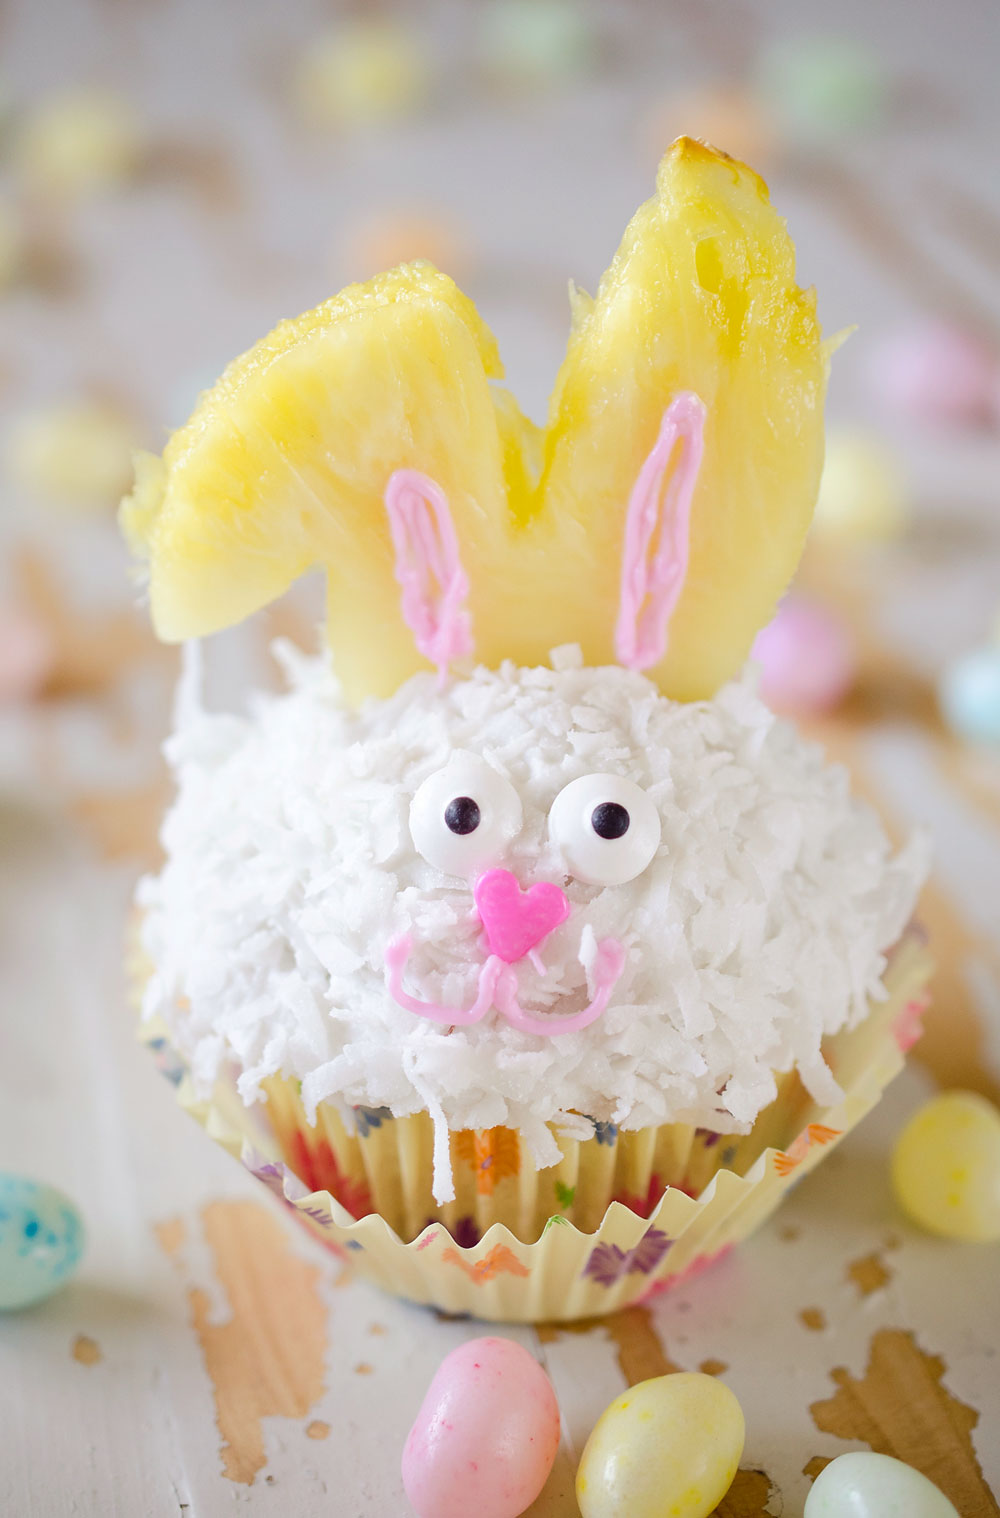 Menu Tgif 22 Easter Themed Baked Treats - Tgif - This Grandma Is Fun